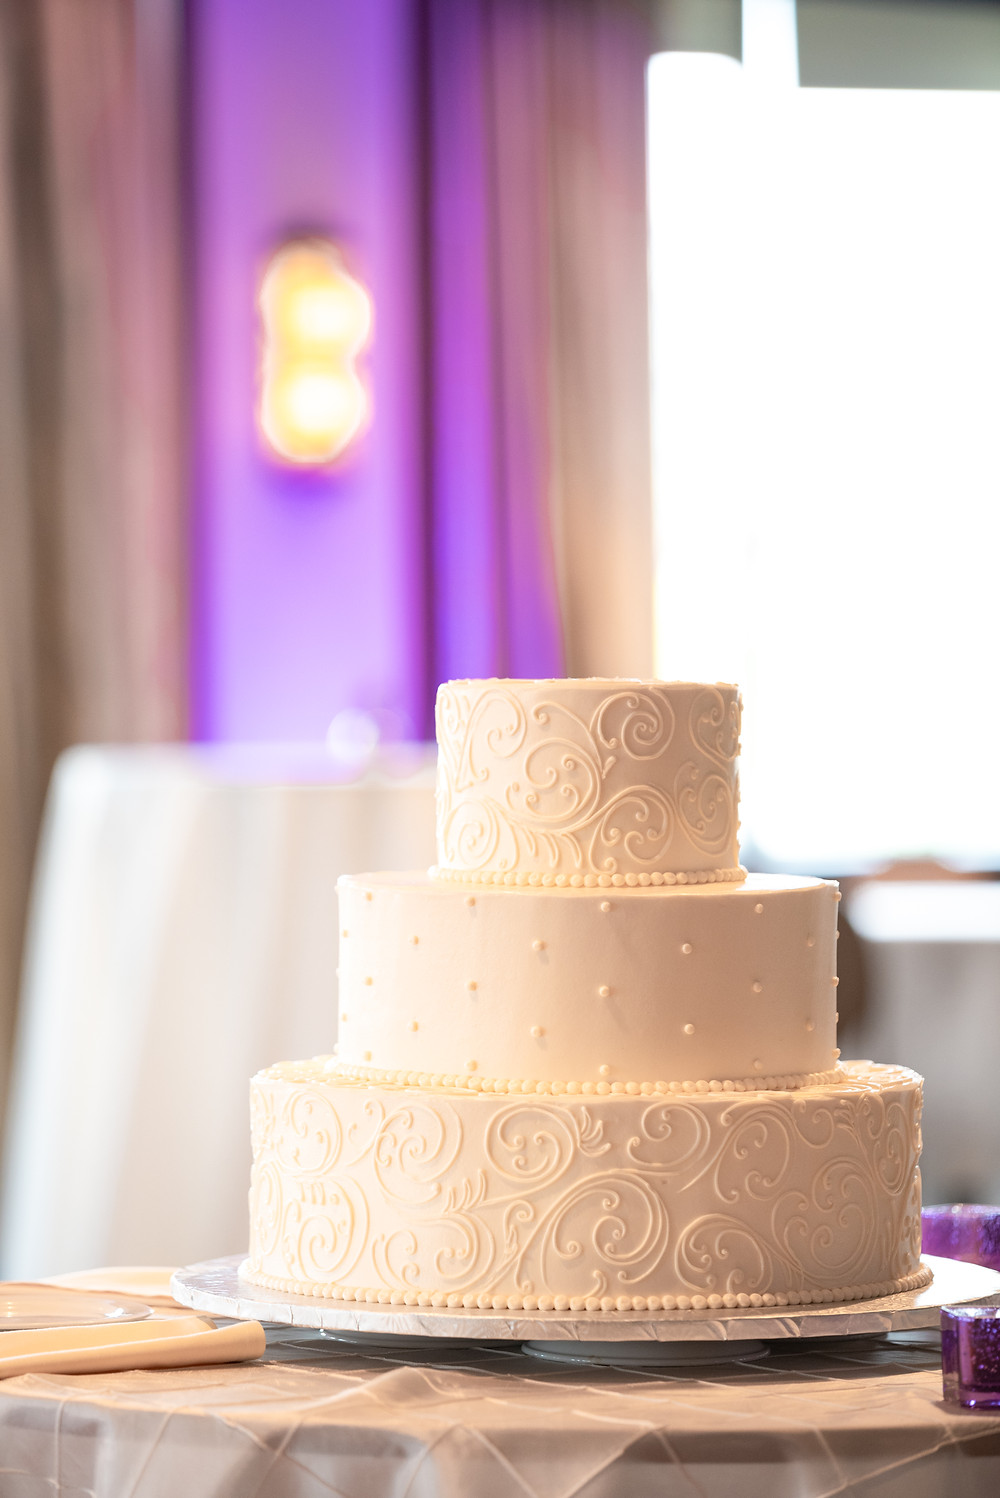 Wedding cake with purple uplighting in the background at the Sheraton in Station Square